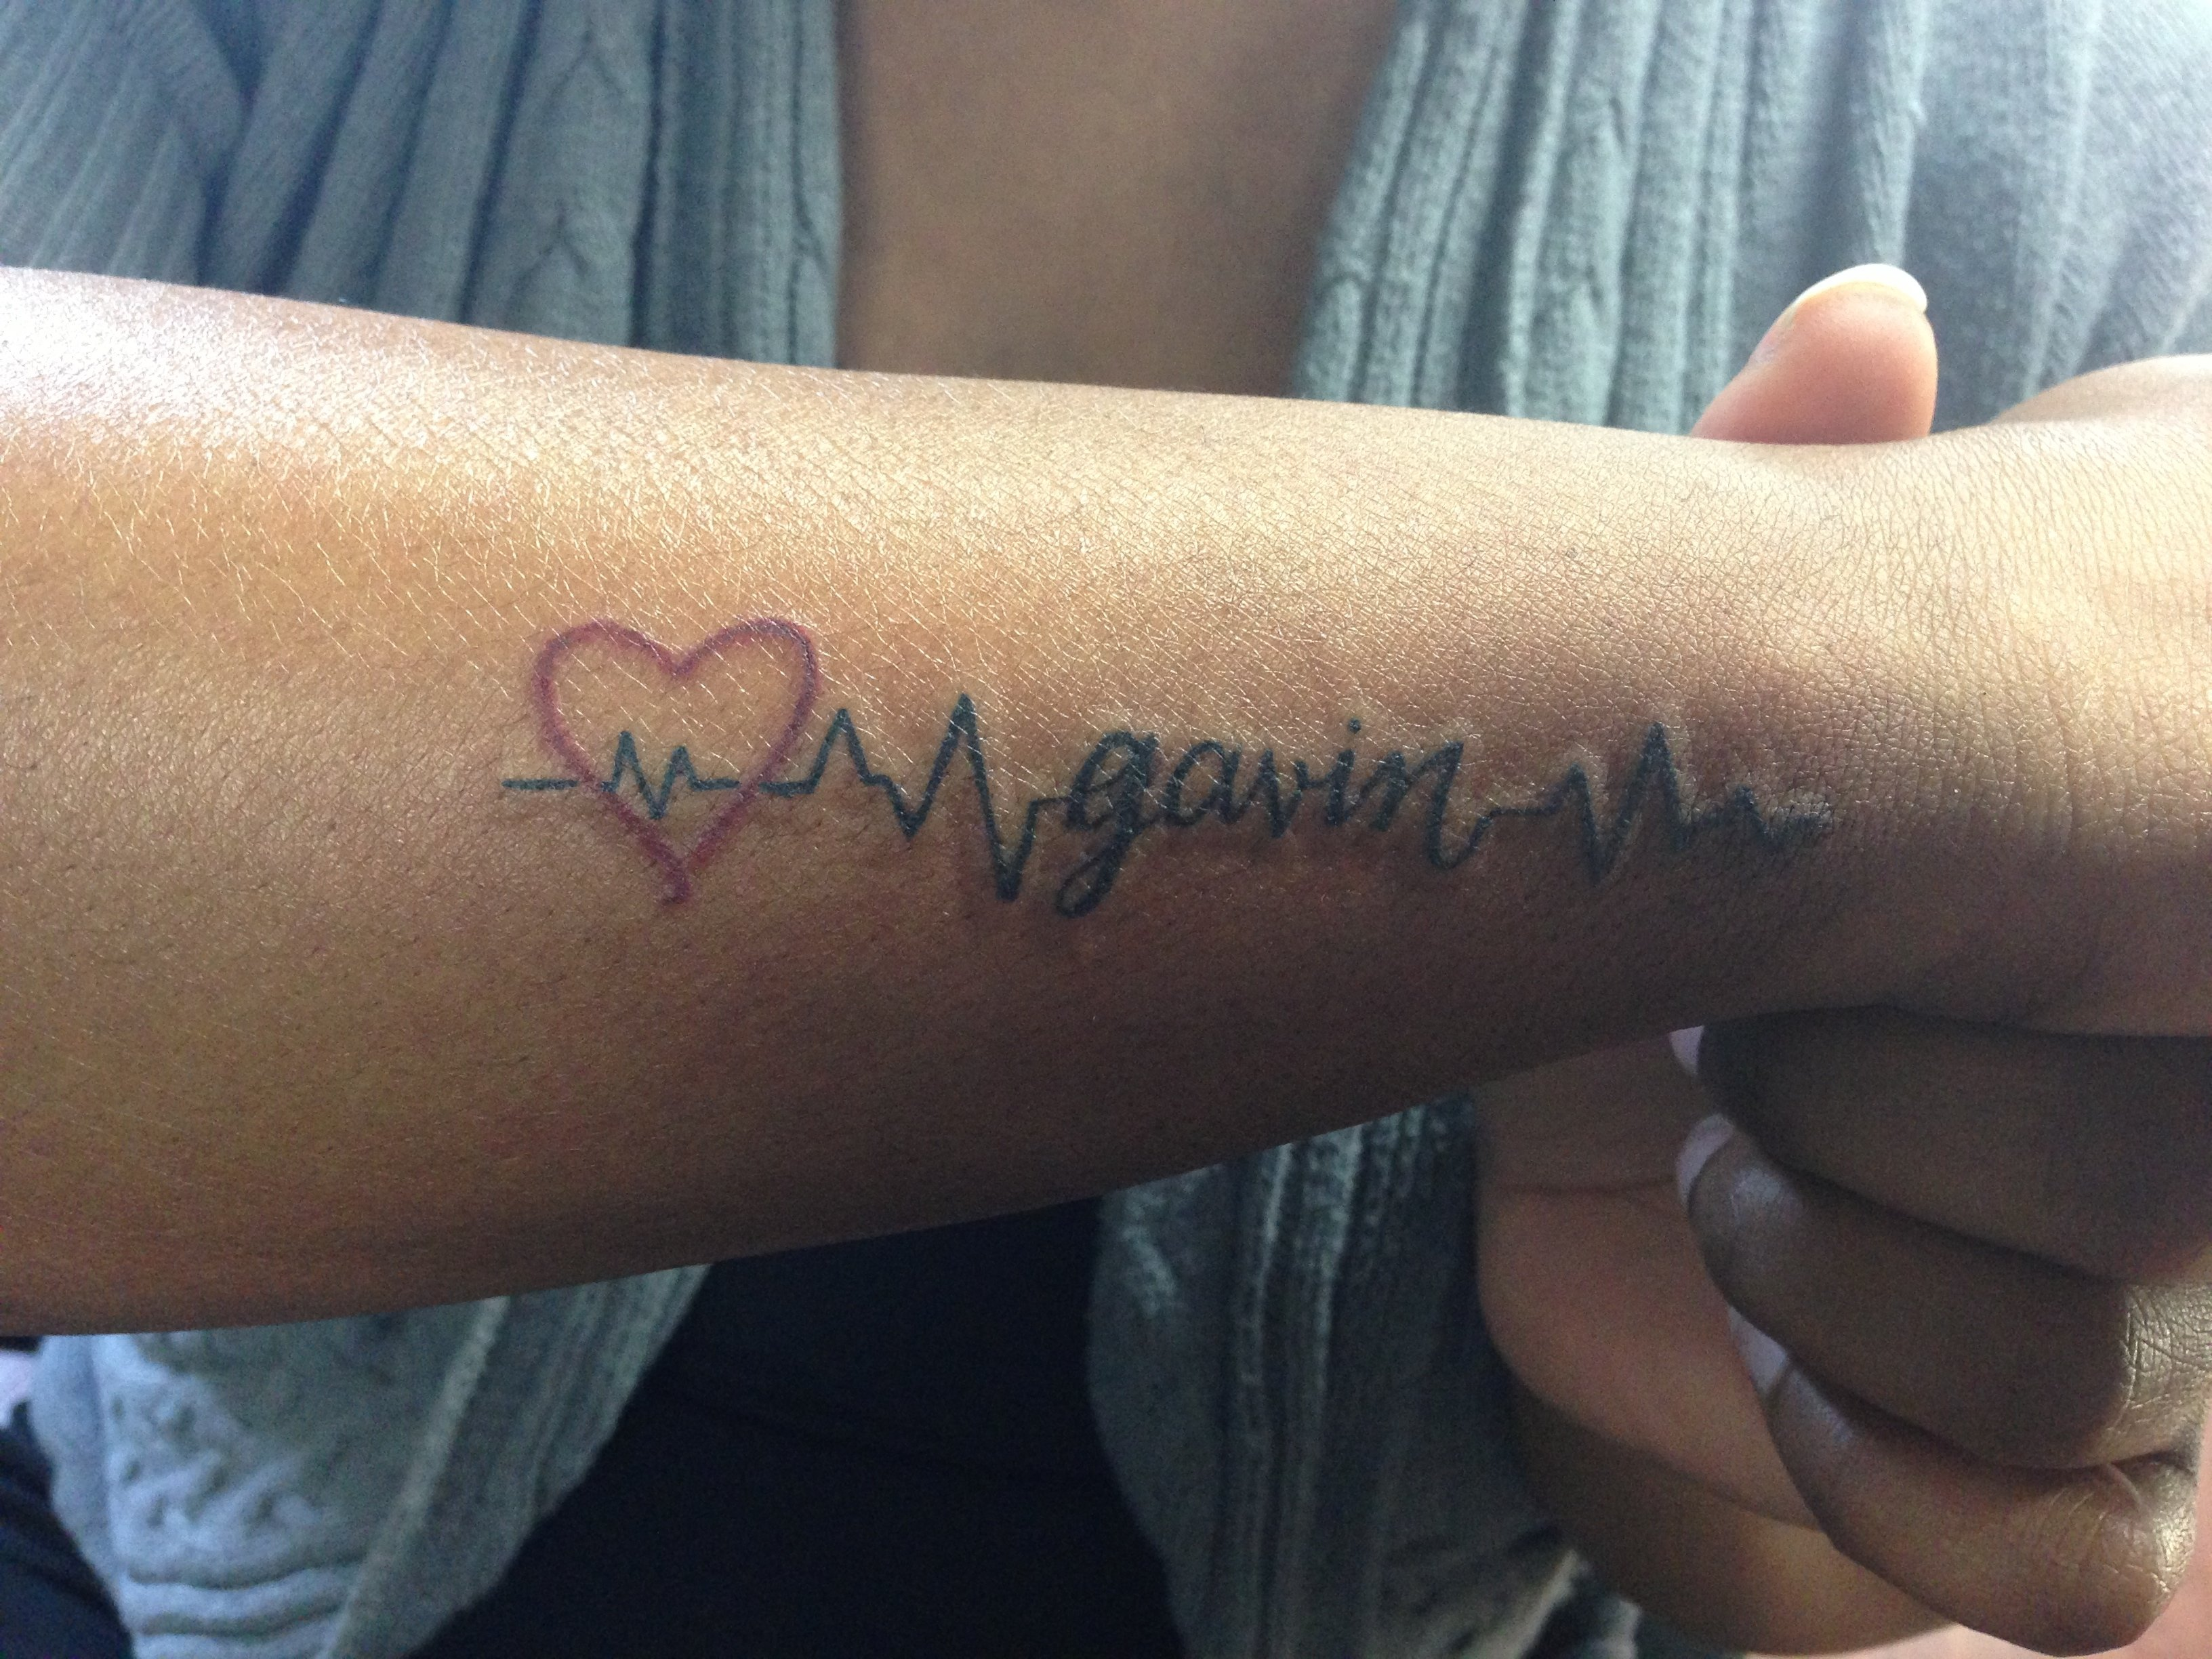 10 Fashionable Tattoo Ideas For Baby Names 11 tattoos to show your love for your kids that are more than just 2020